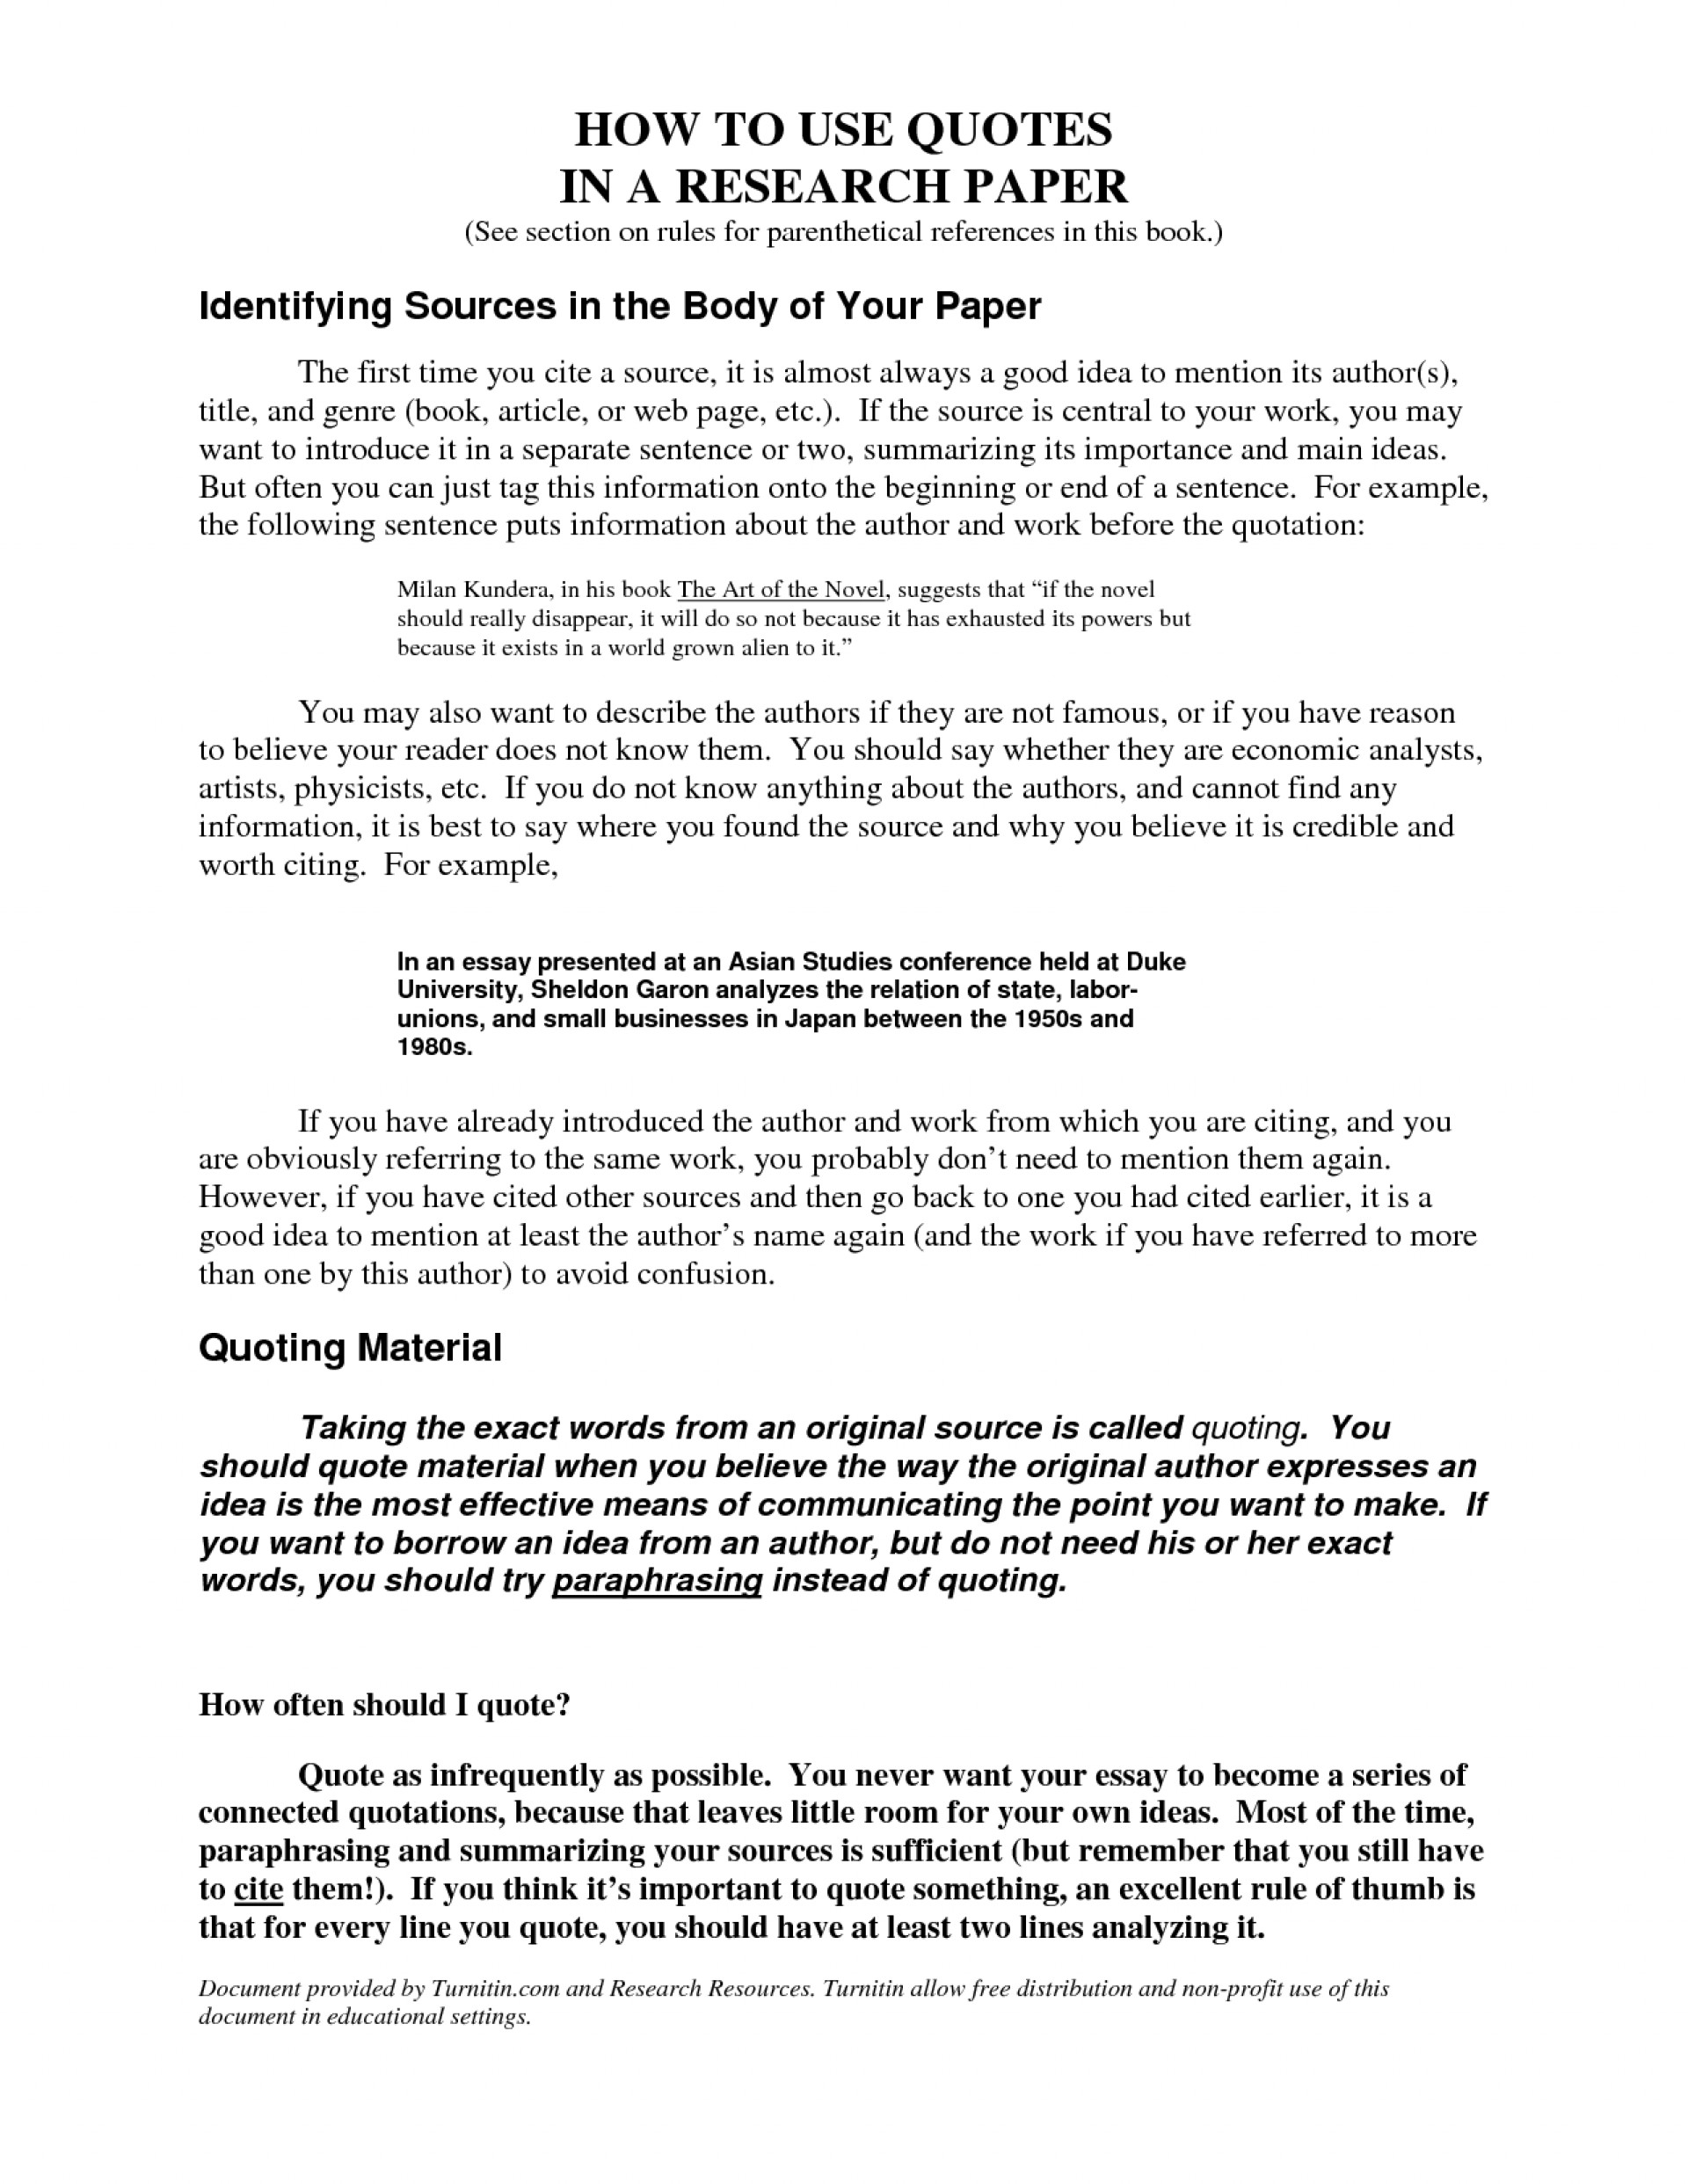 003 Best Solutions Of Writing Quotes In Essays Marvelous Embedding On Quotestopics Essay Example Quoting Frightening An A Website Harvard Dialogue Book Mla 1920